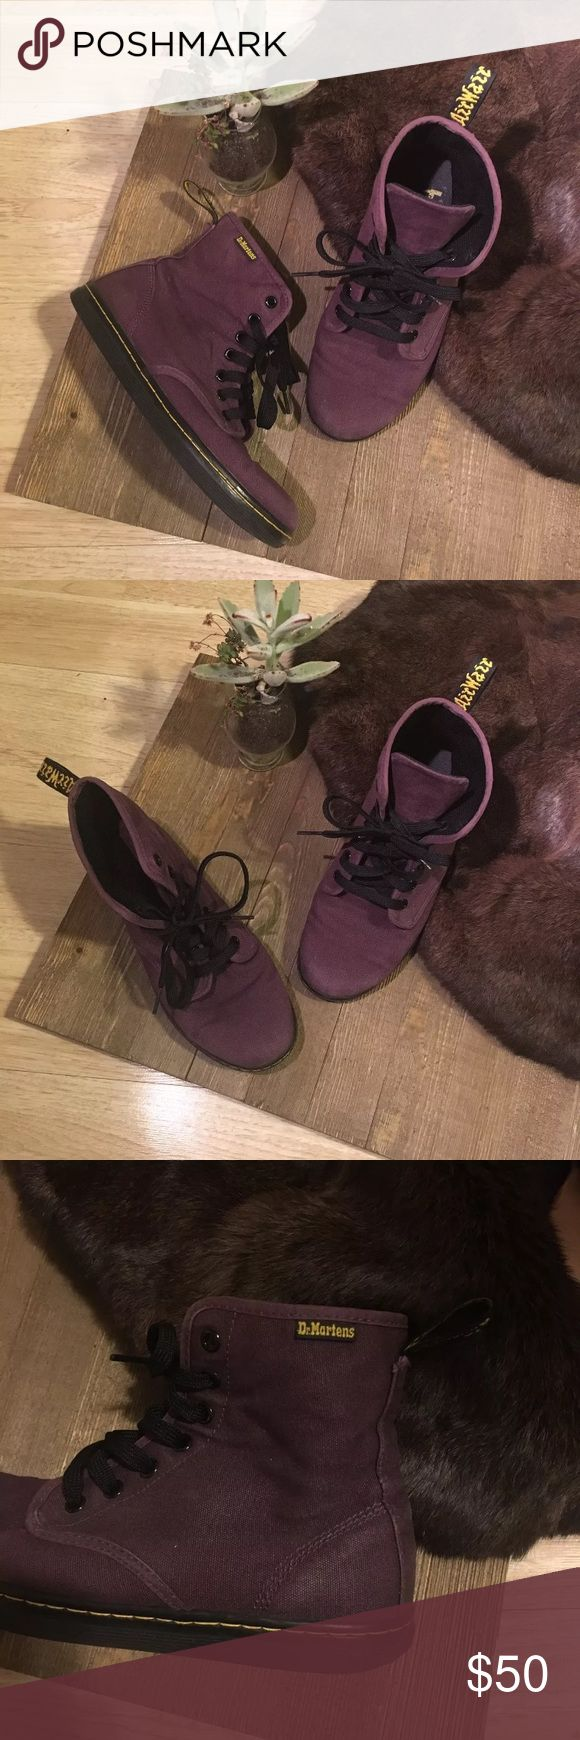 Dr. Martens Purple Canvas Boot AirWair US 7 Pre owned purple canvas Dr Martens. Only used a few times. True to size in great pre owned condition Dr Martens Shoes Combat & Moto Boots